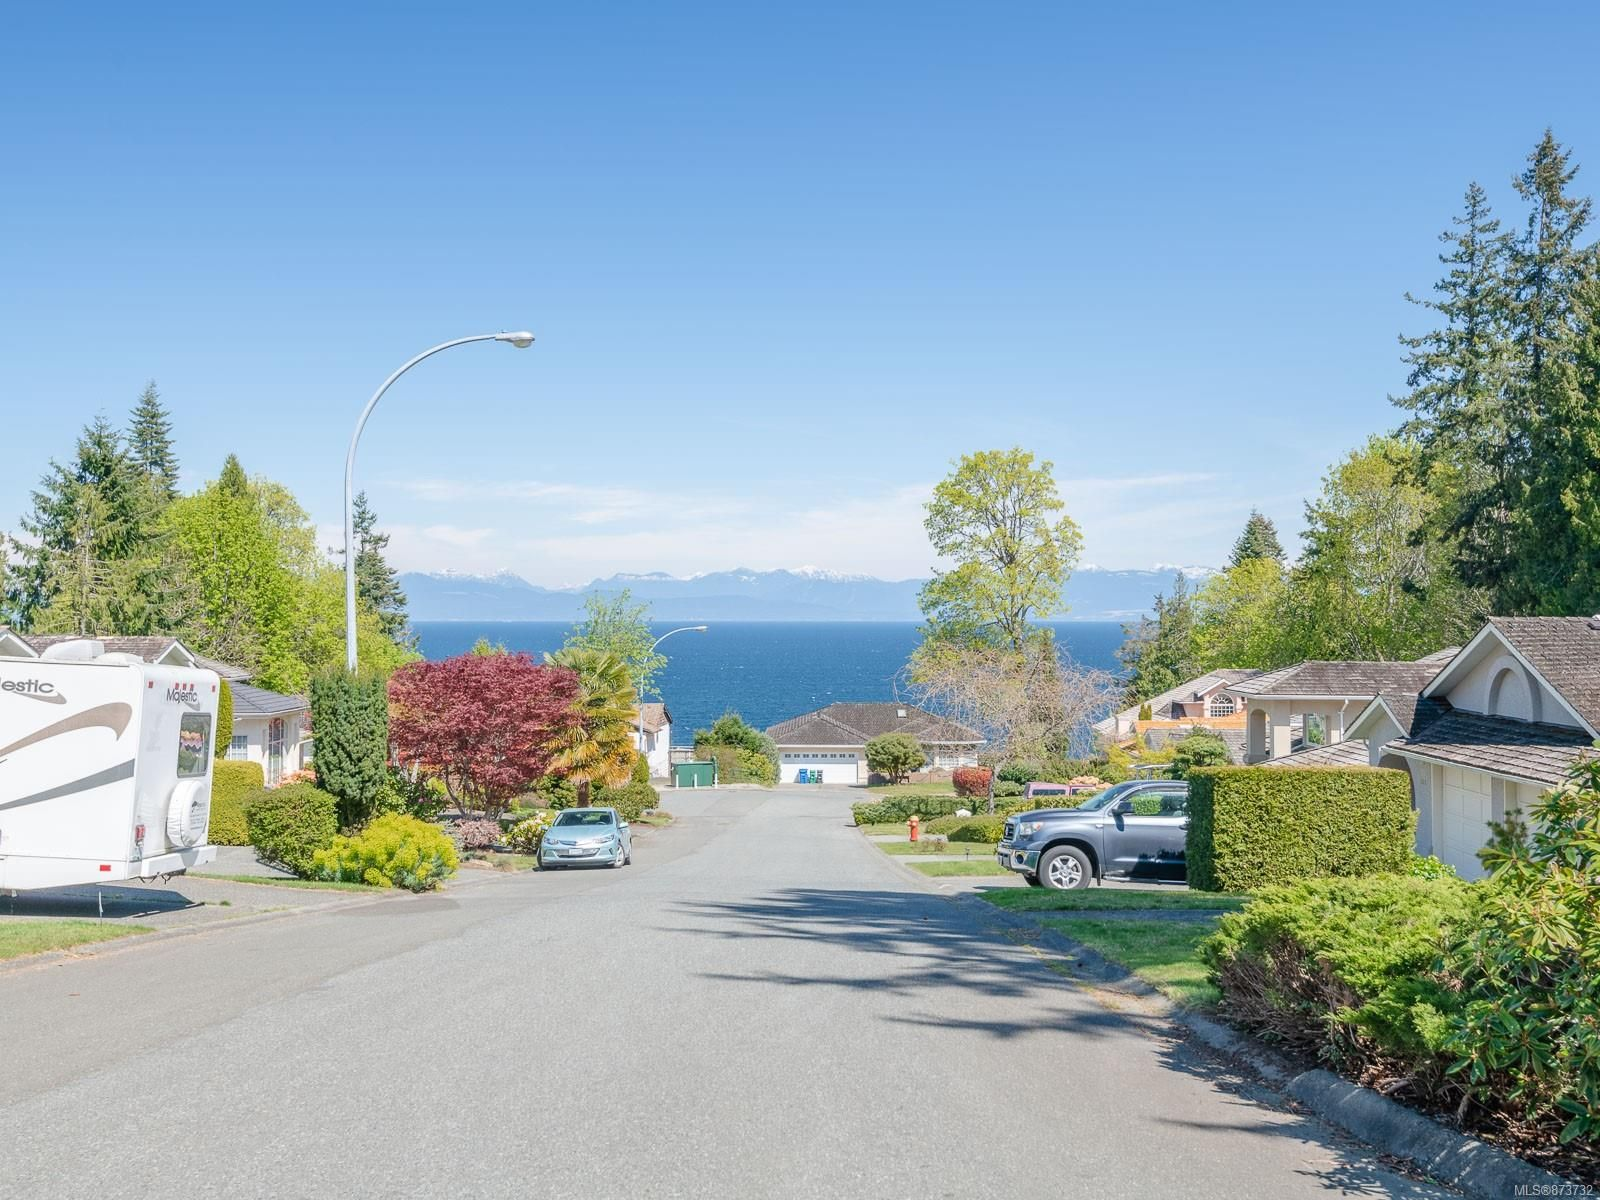 Main Photo: 6102 Greenwood Pl in : Na North Nanaimo House for sale (Nanaimo)  : MLS®# 873732